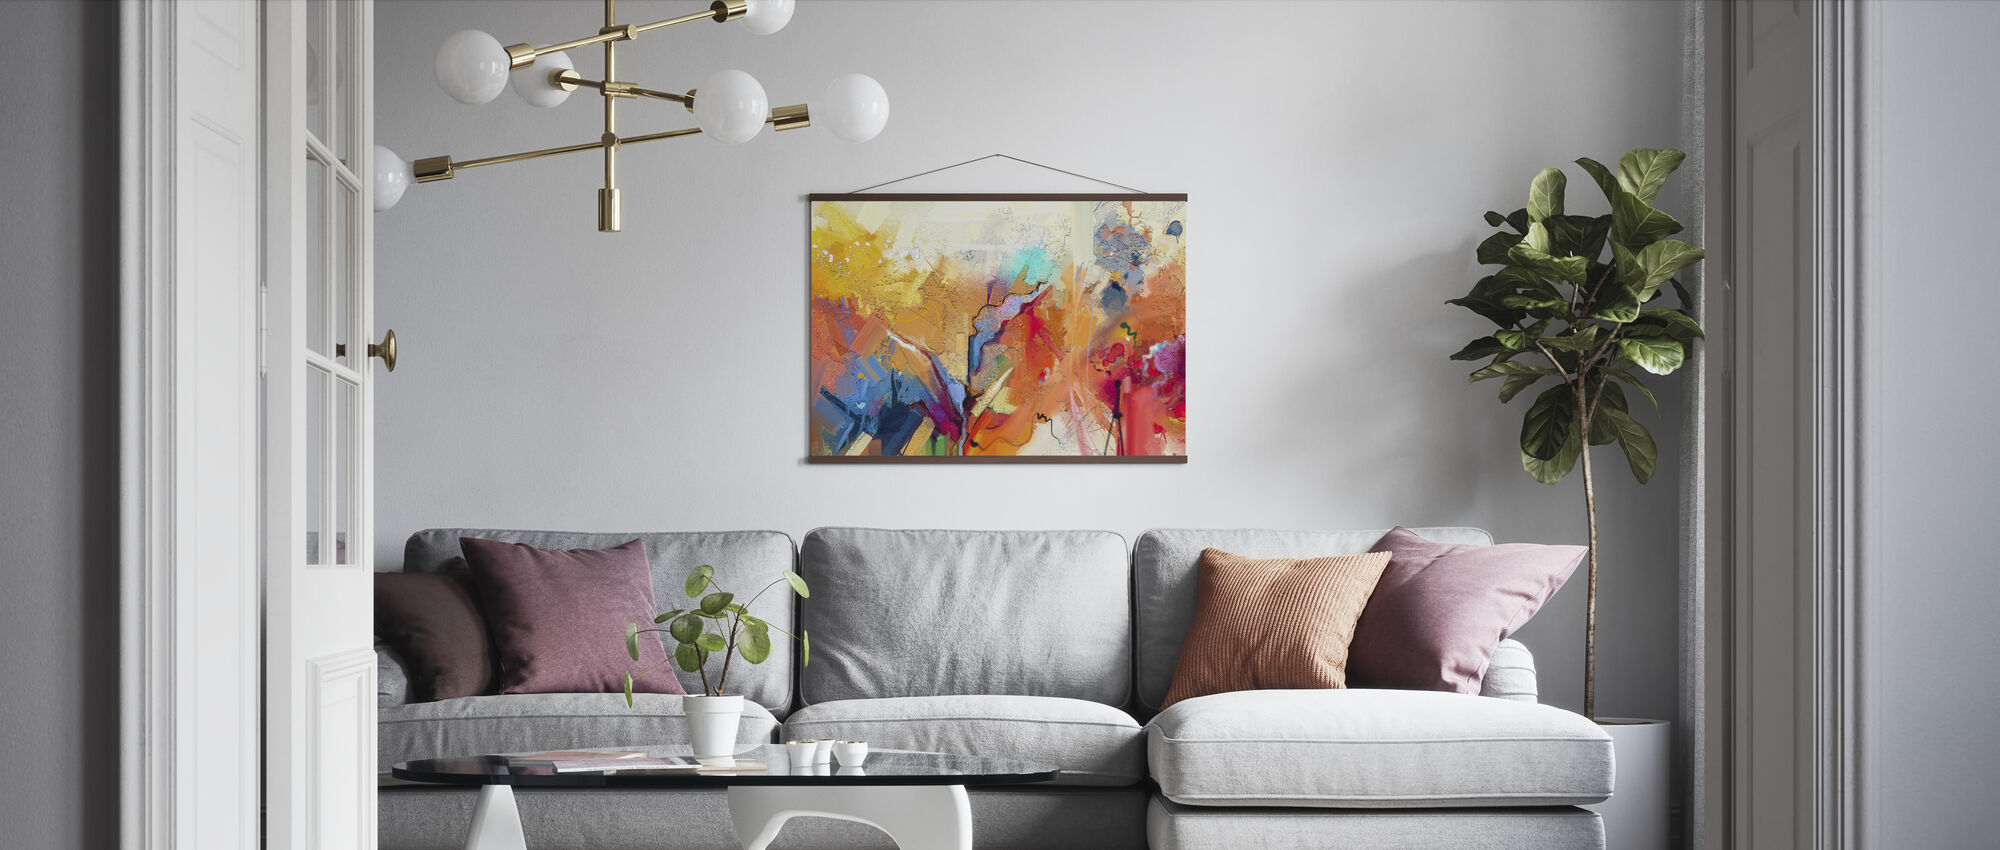 Colorful Abstract Painting - Poster - Living Room